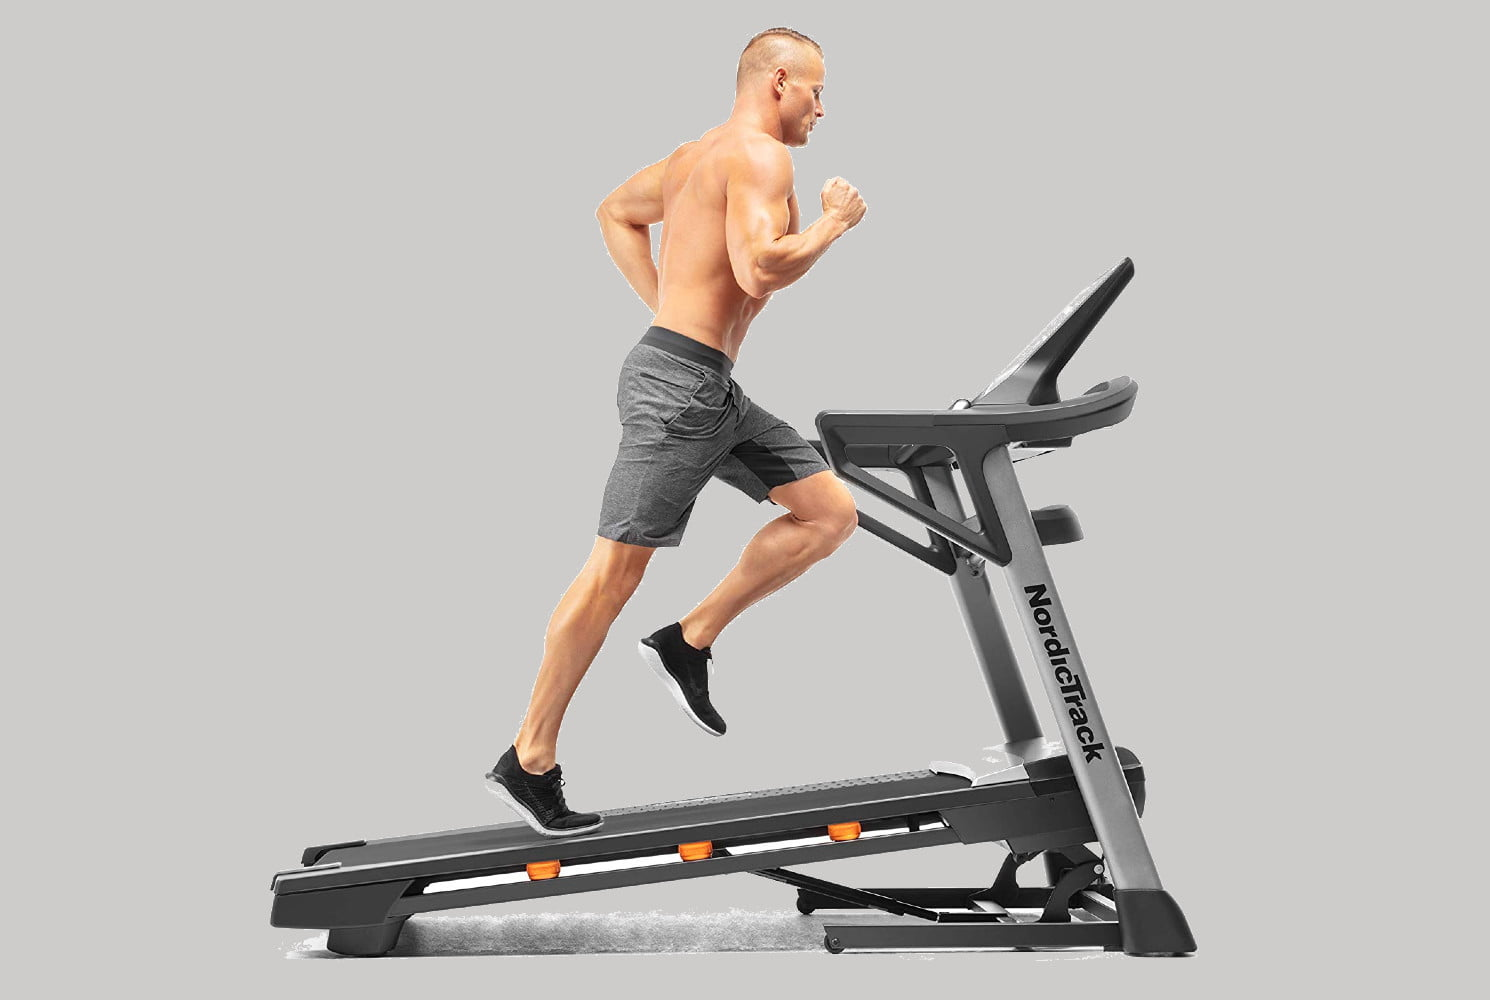 These great treadmill deals can help you stick with your fitness goals in 2020